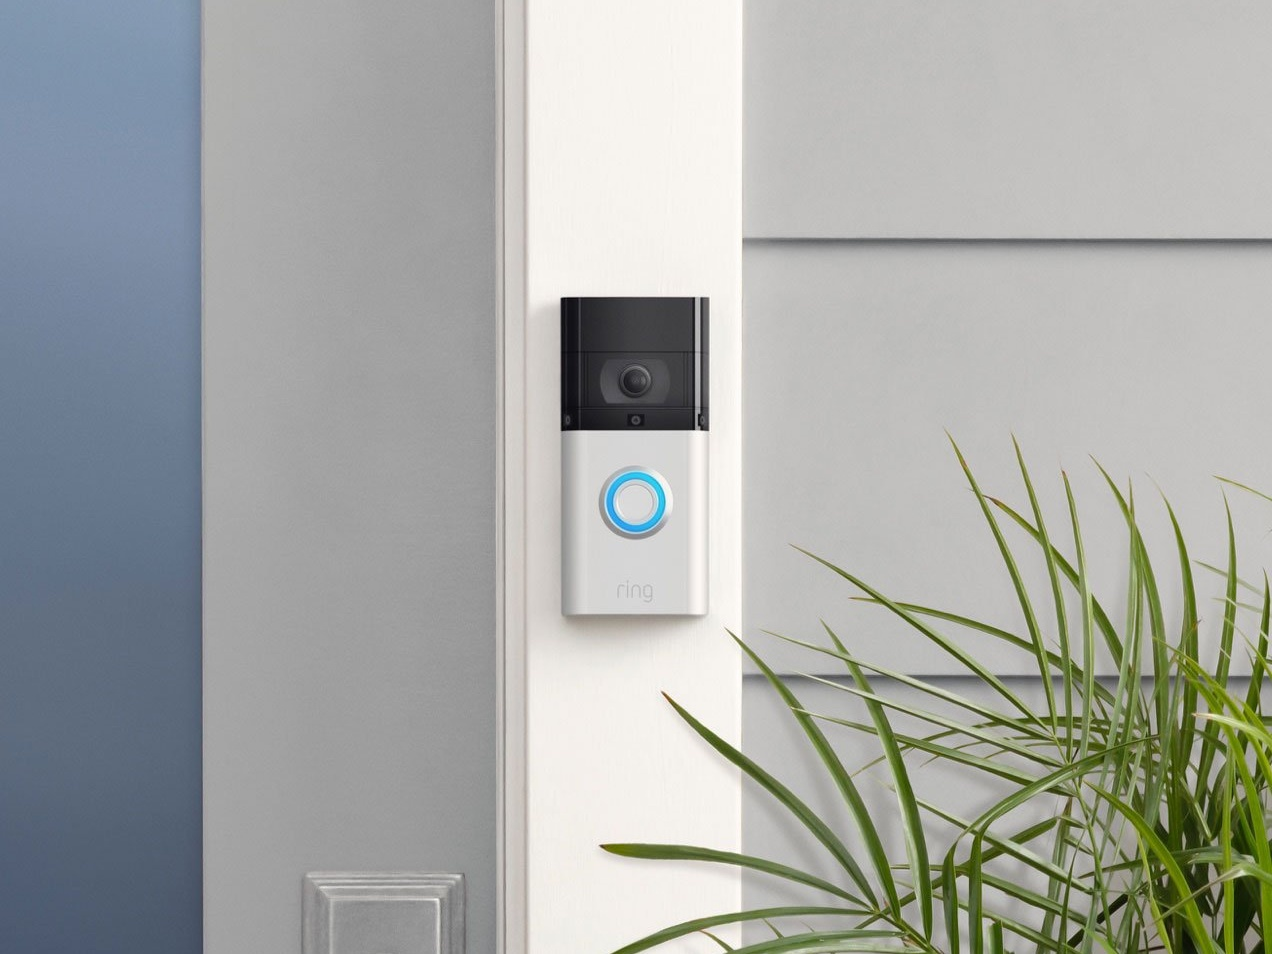 smart home deurbel ring